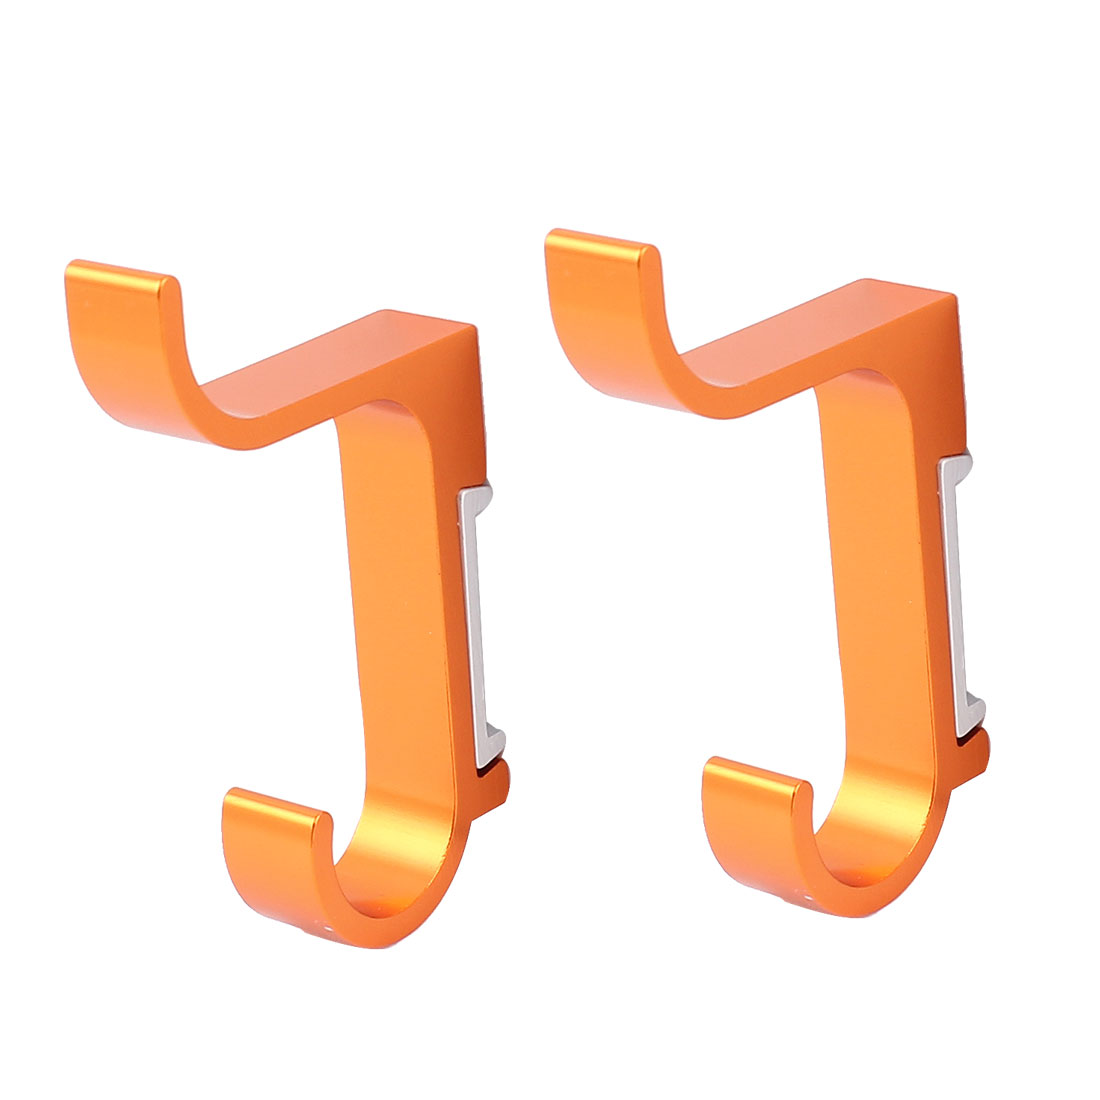 Bathroom Clothes Bath Towel Wall Mount Aluminum Hanging Hook Hanger 2 Pcs Orange